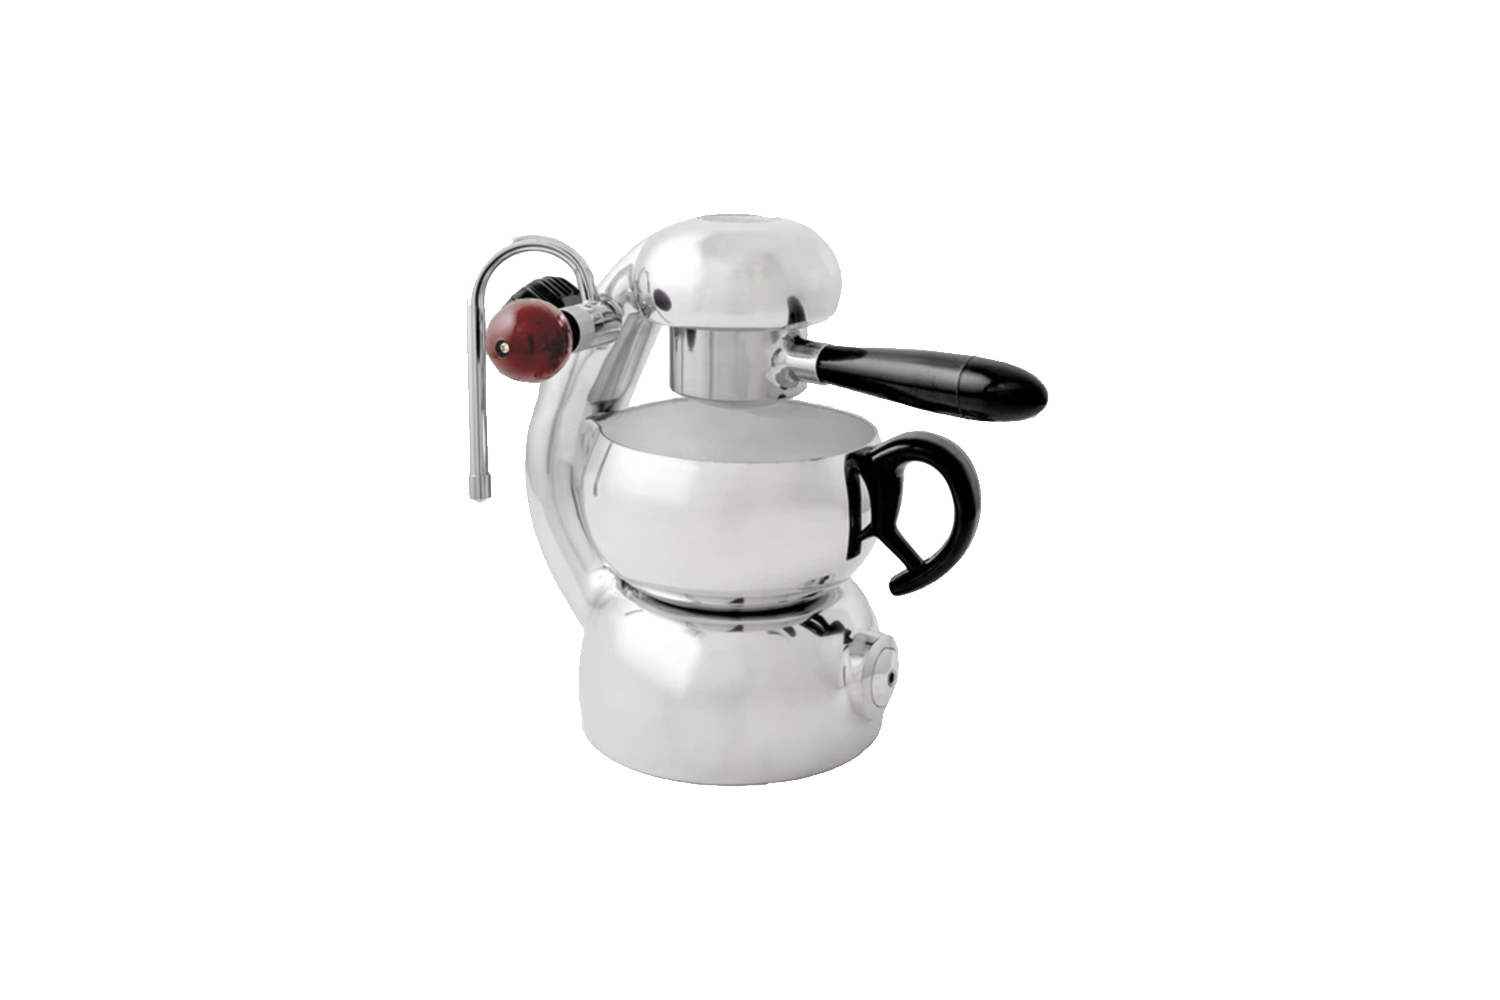 the sorrentina atomic coffee maker (otherwise known as the atomic) comes with a 14